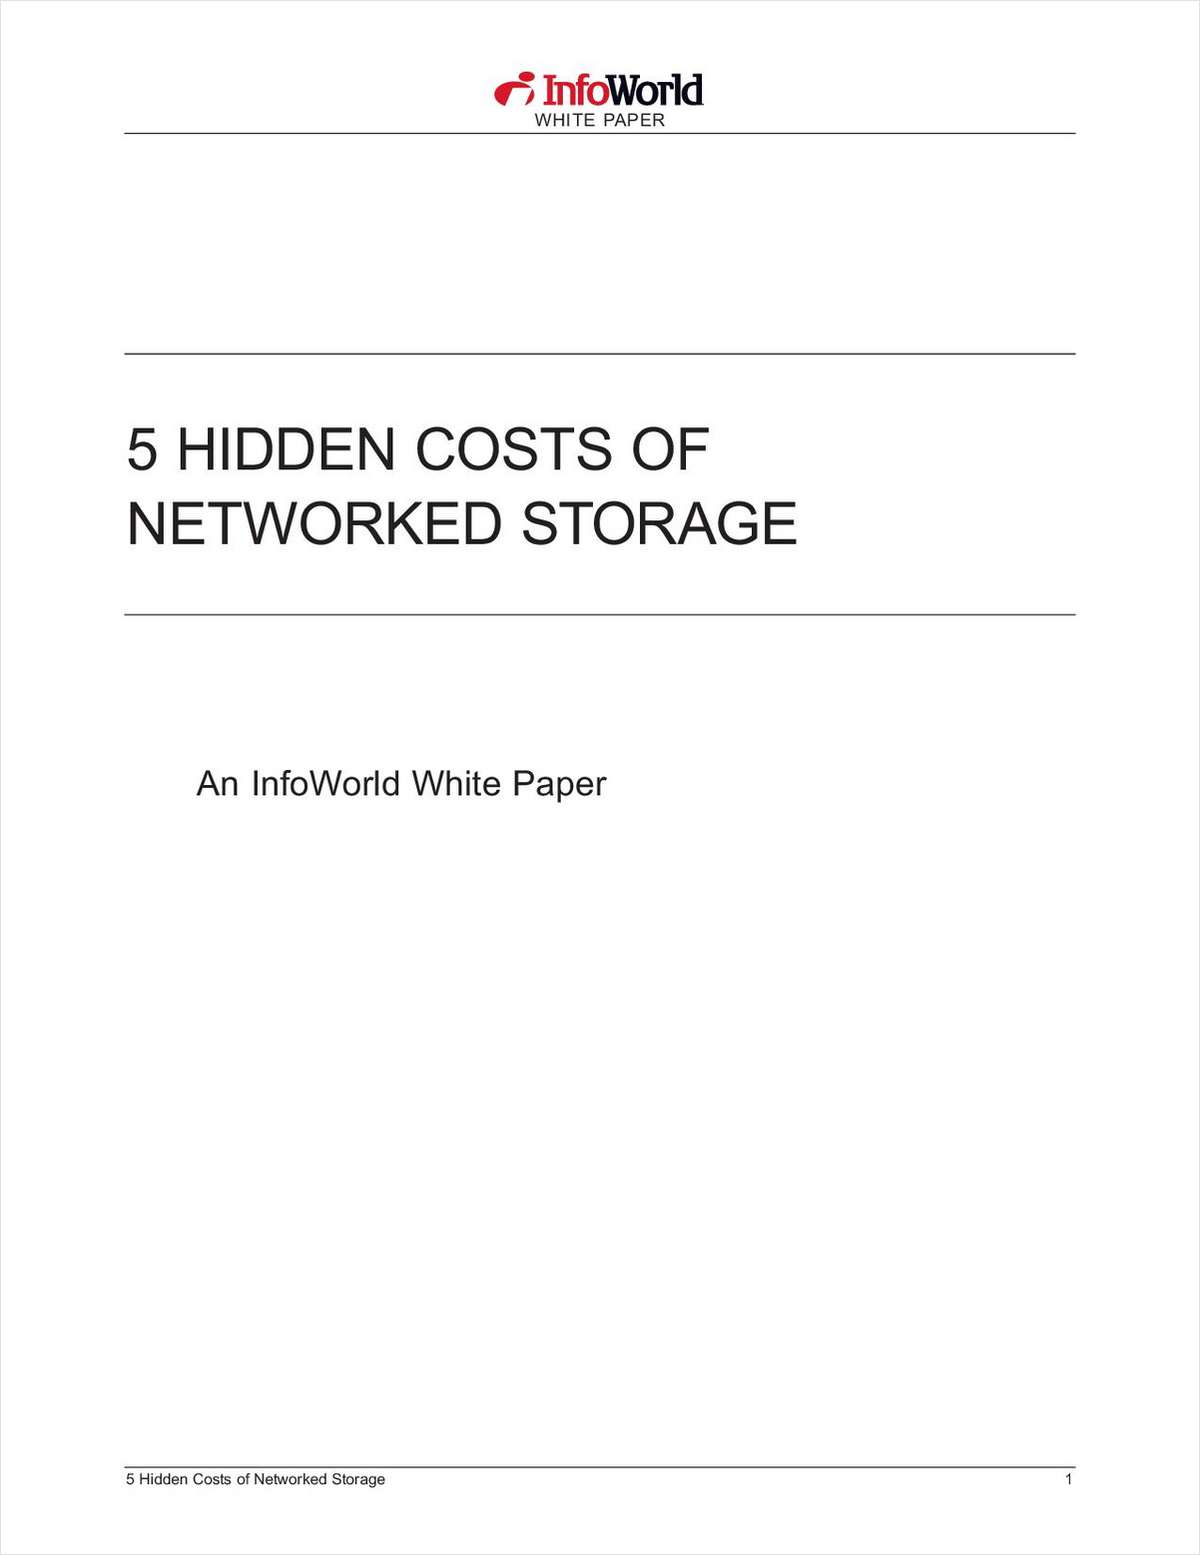 5 Hidden Costs of Networked Storage